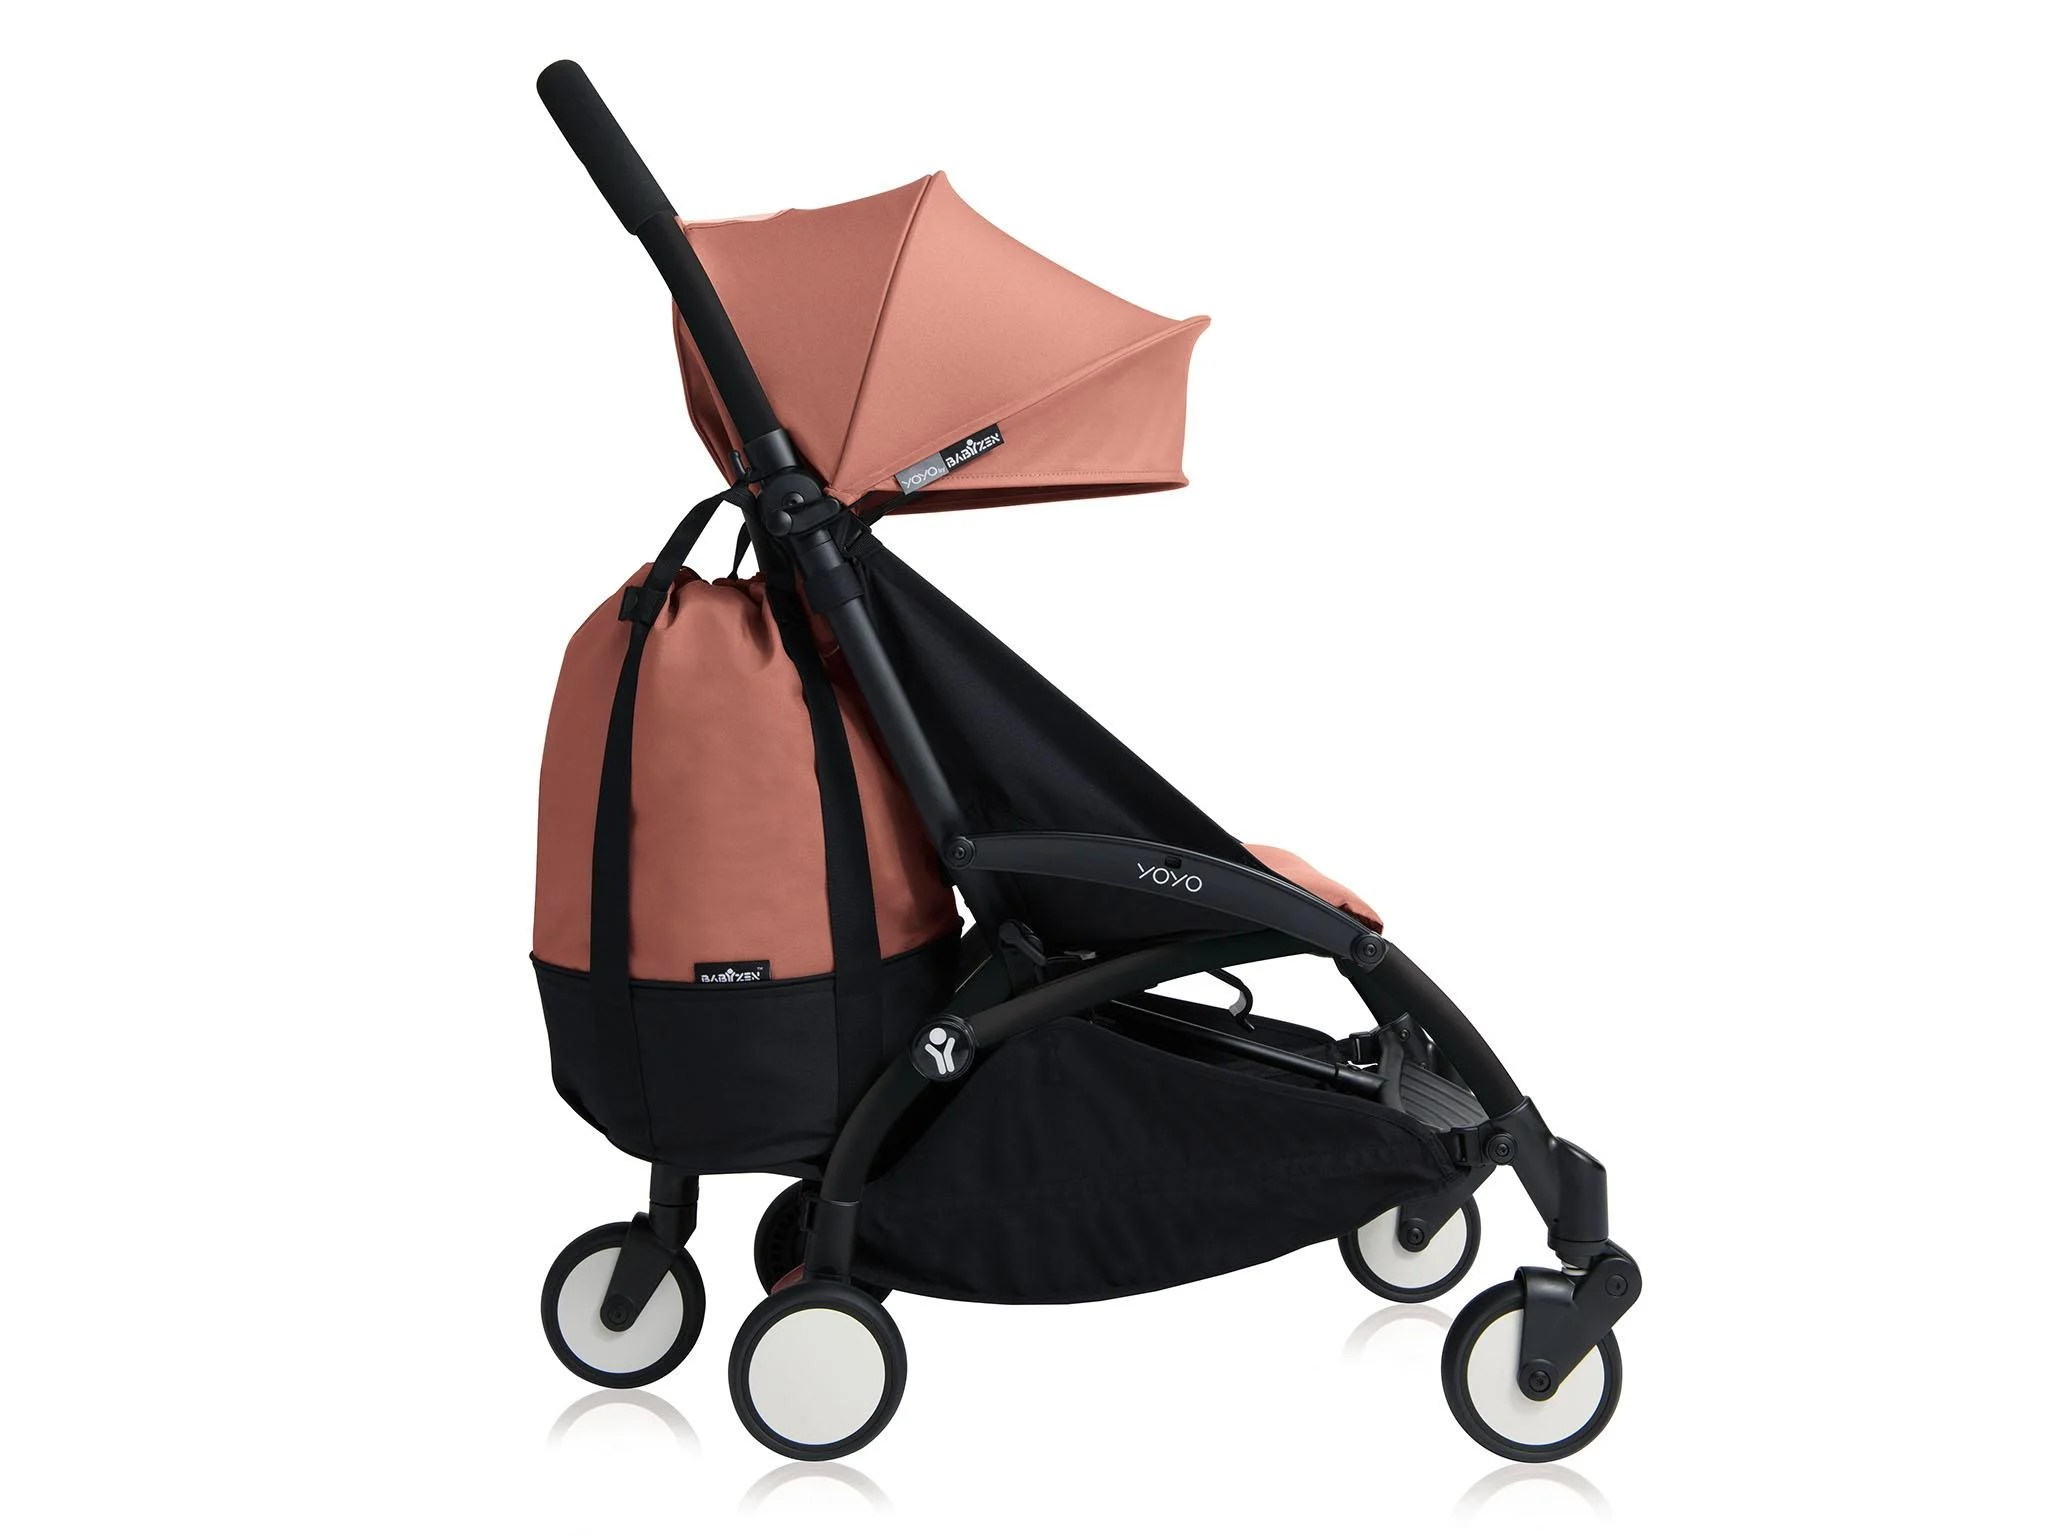 Babyzen Yoyo In Berlin Best Compact Stroller The Perfect Collapsible Pushchair For